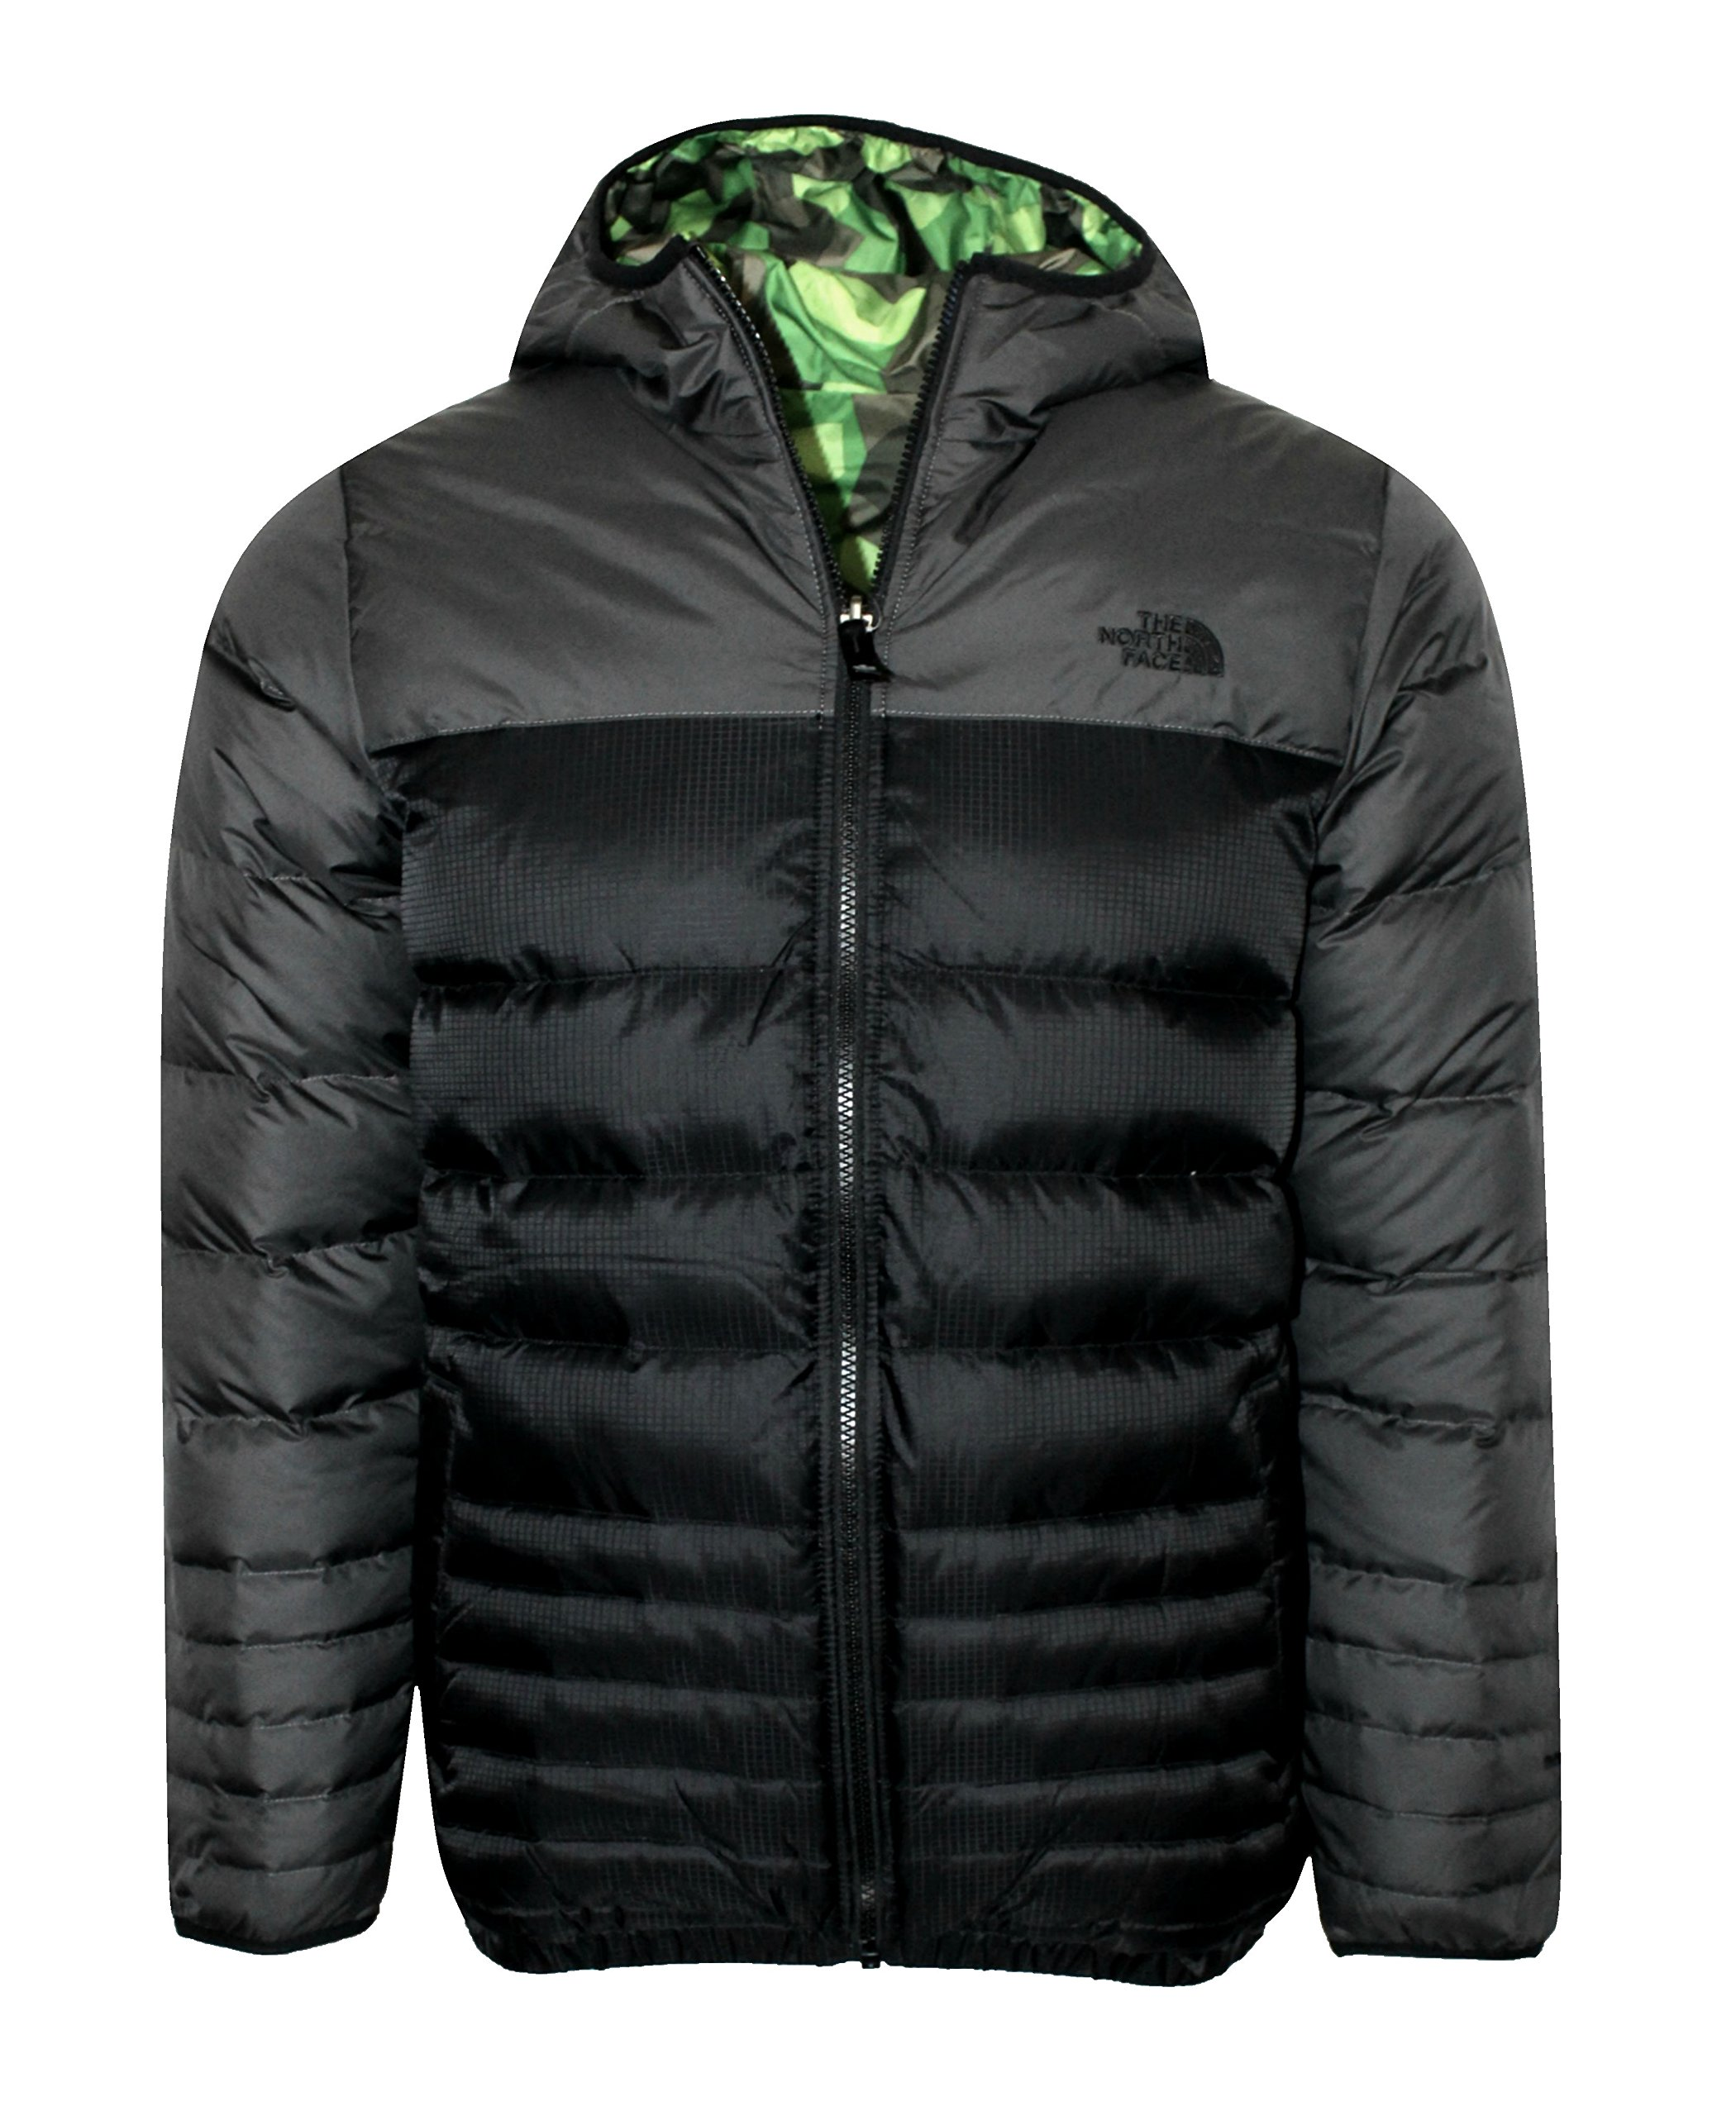 THE NORTH FACE youth boys REESE DOWN REVERSIBLE hooded JACKET (MEDIUM) by The North Face (Image #1)